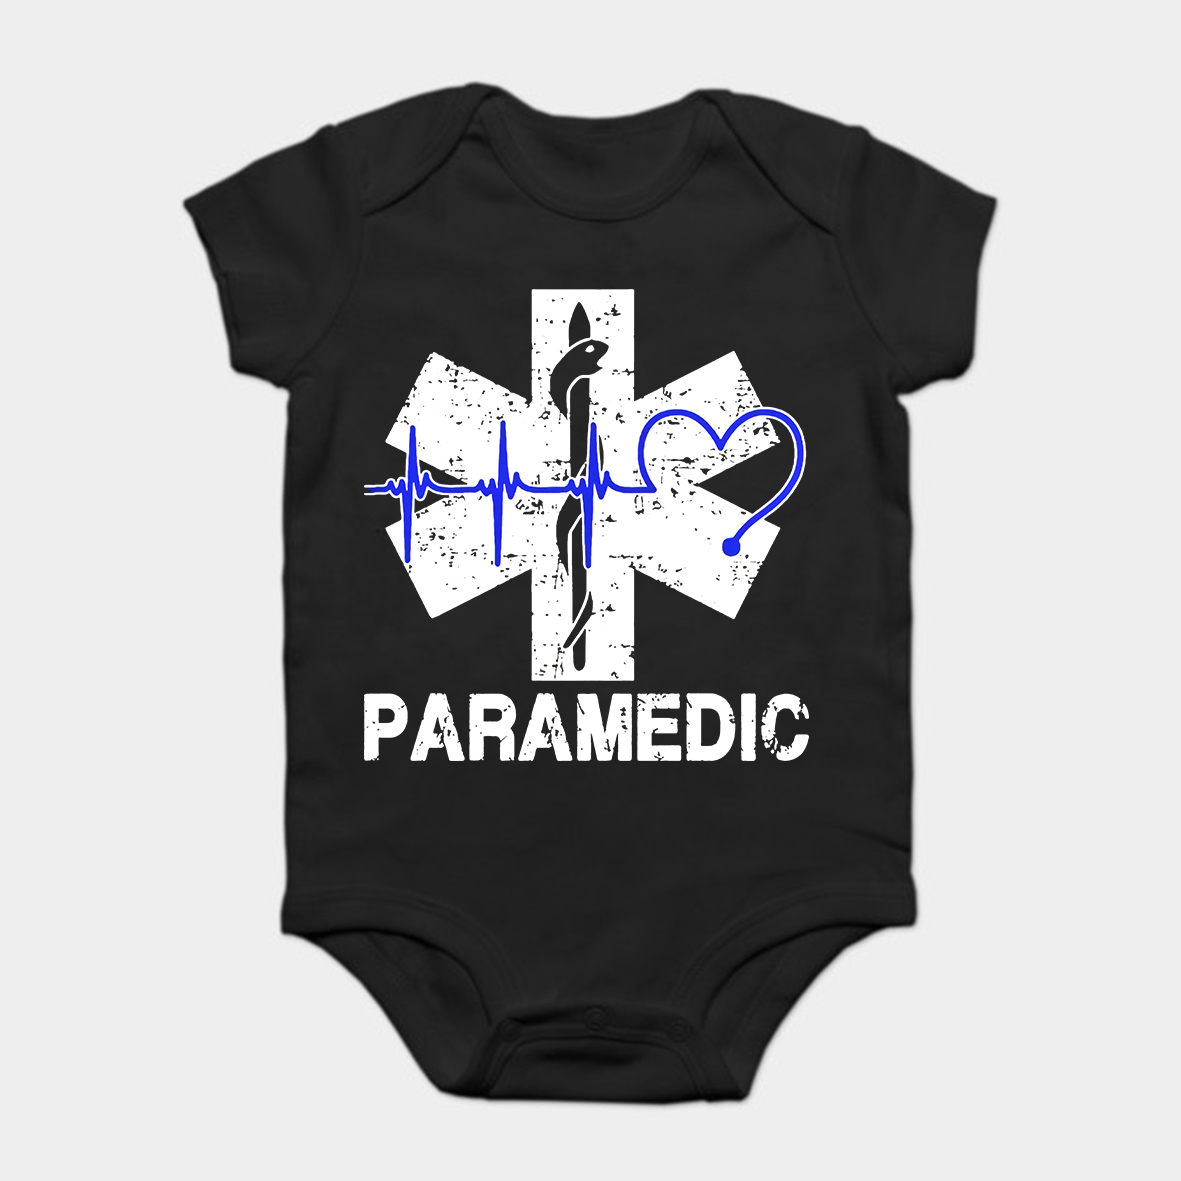 Baby Onesie Baby Bodysuits kid t shirt Funny novelty Paramedic Heartbeat Shirtcool(China)